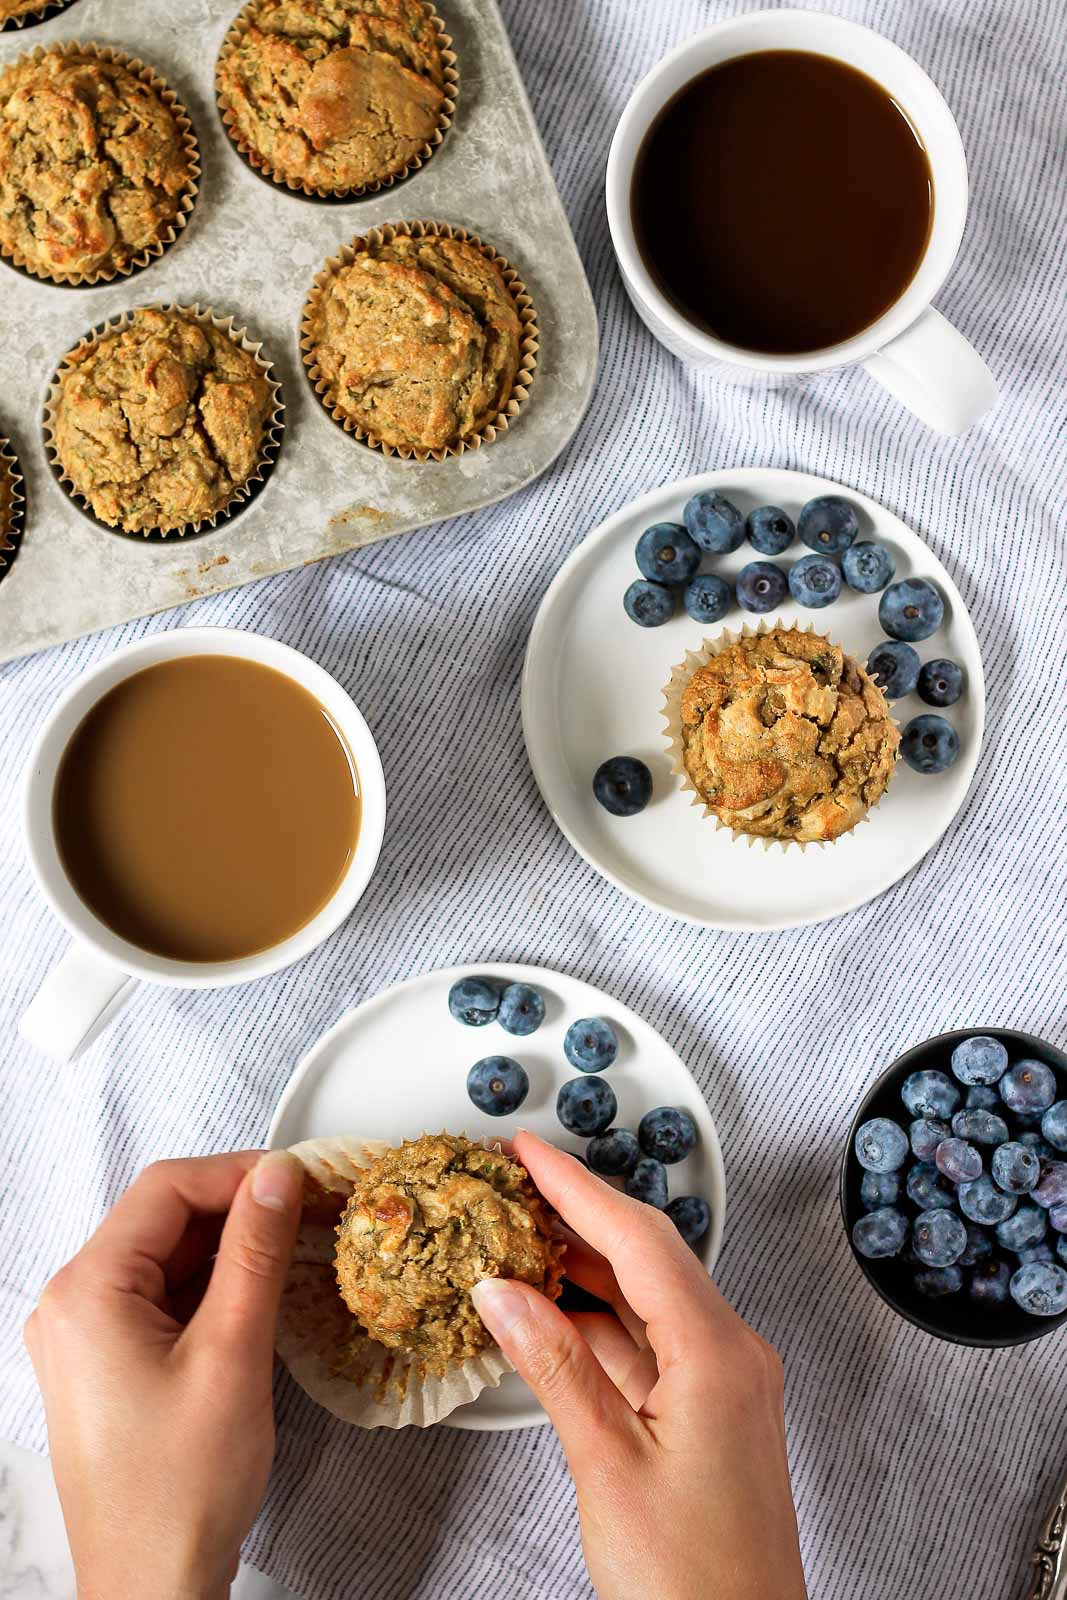 Scrumptious paleo banana zucchini muffins made with coconut flour and cashew butter. These flavorful muffins are low in sugar and high in protein and are also dairy free & gluten free!